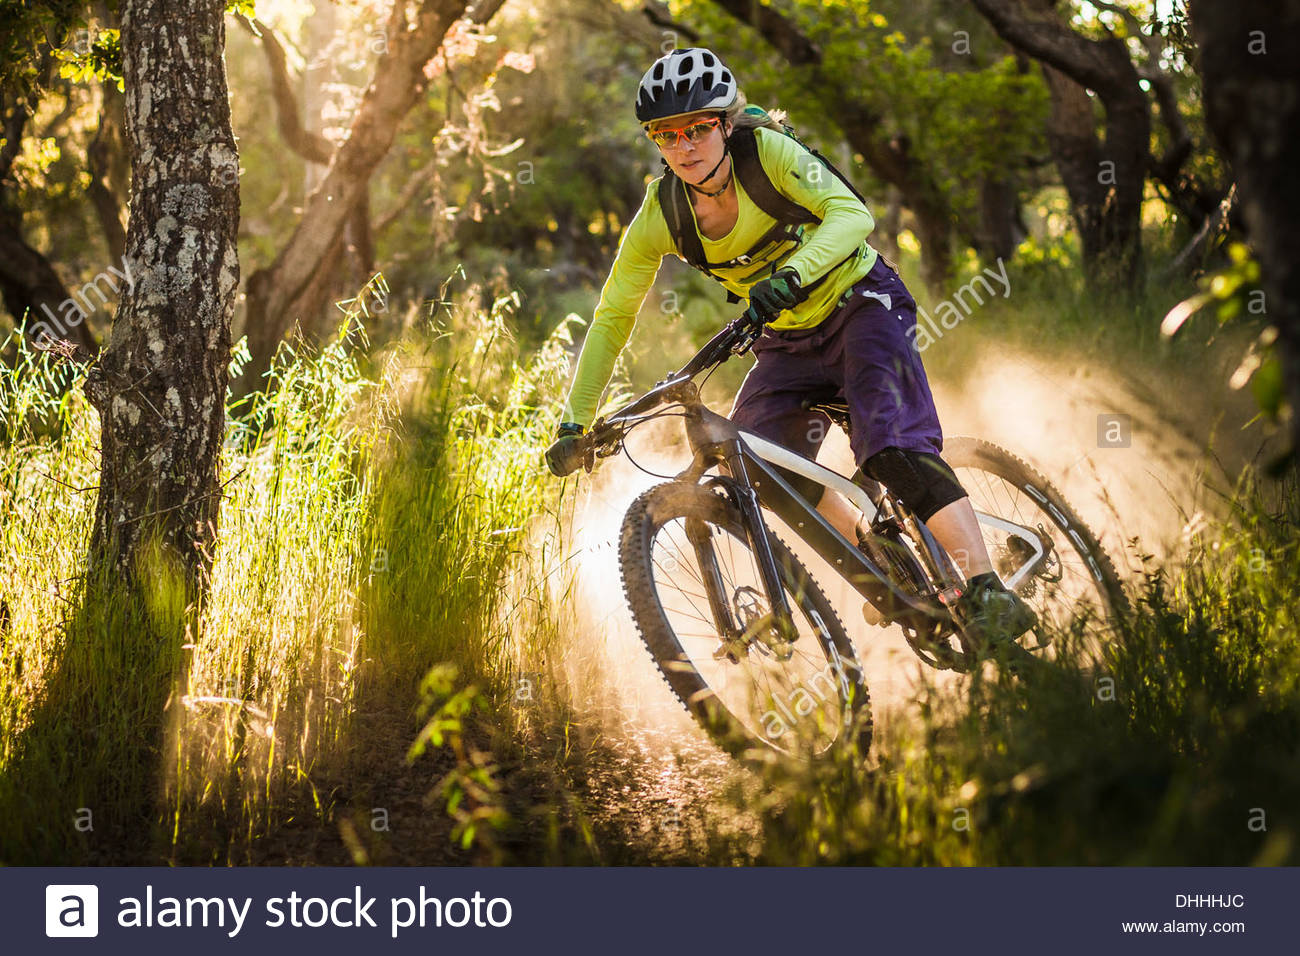 Young woman mountain biking, Monterey, California, USA - Stock Image